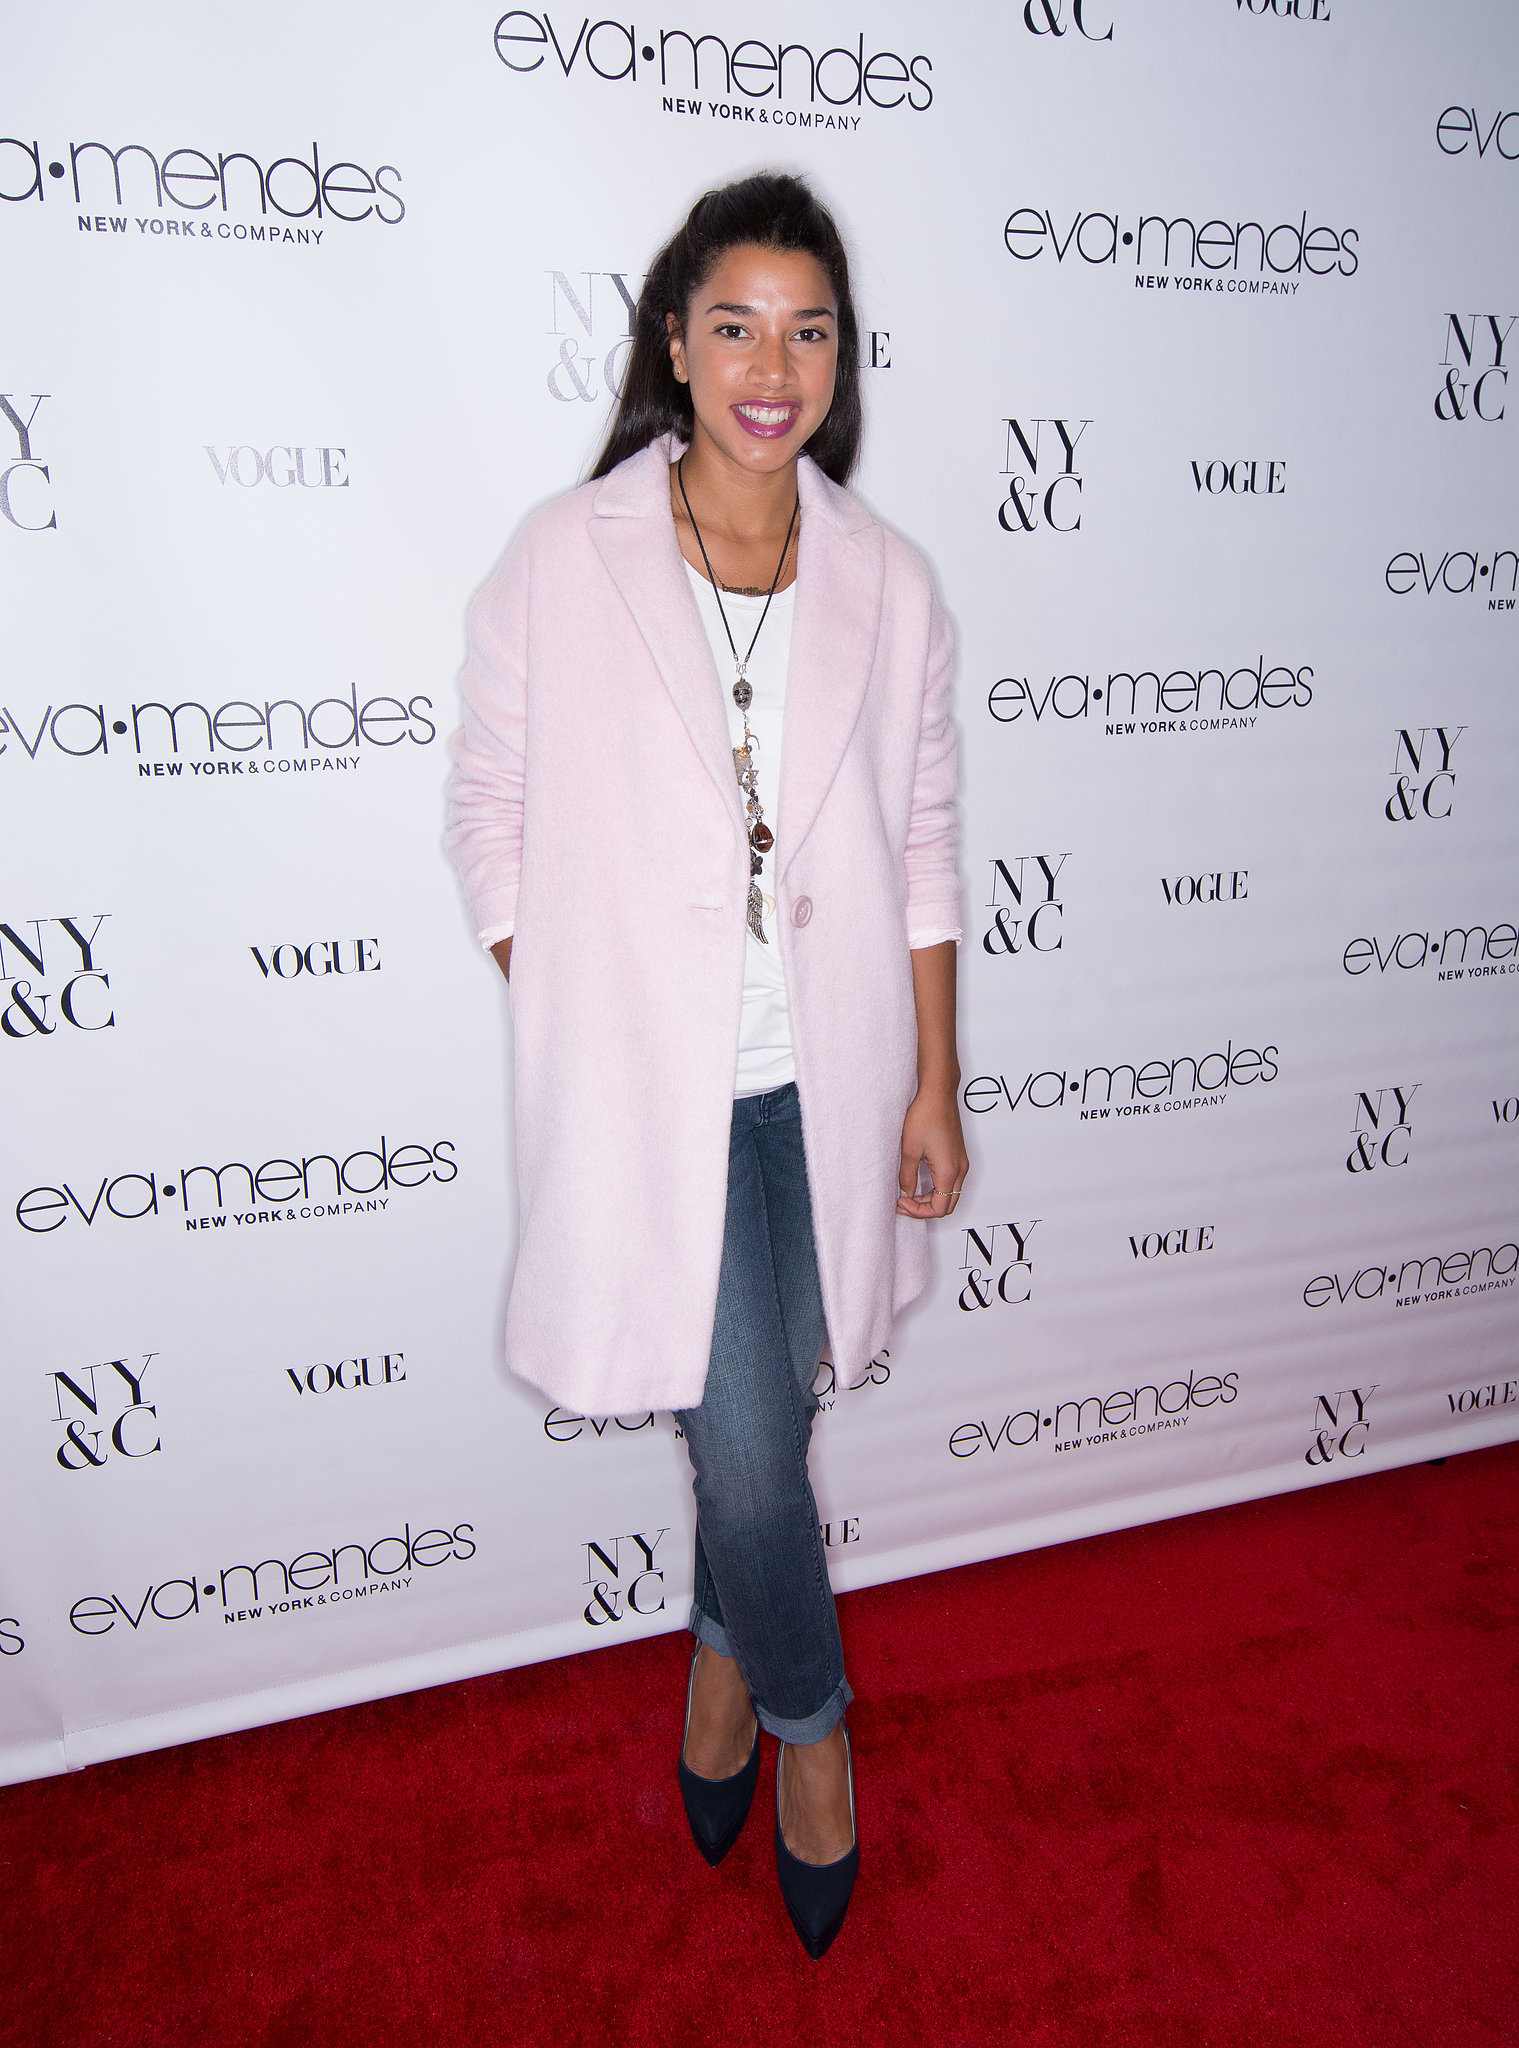 Hannah Bronfman helped Eva Mendes celebrate her New York & Co. collection launch in a pretty pink topper.